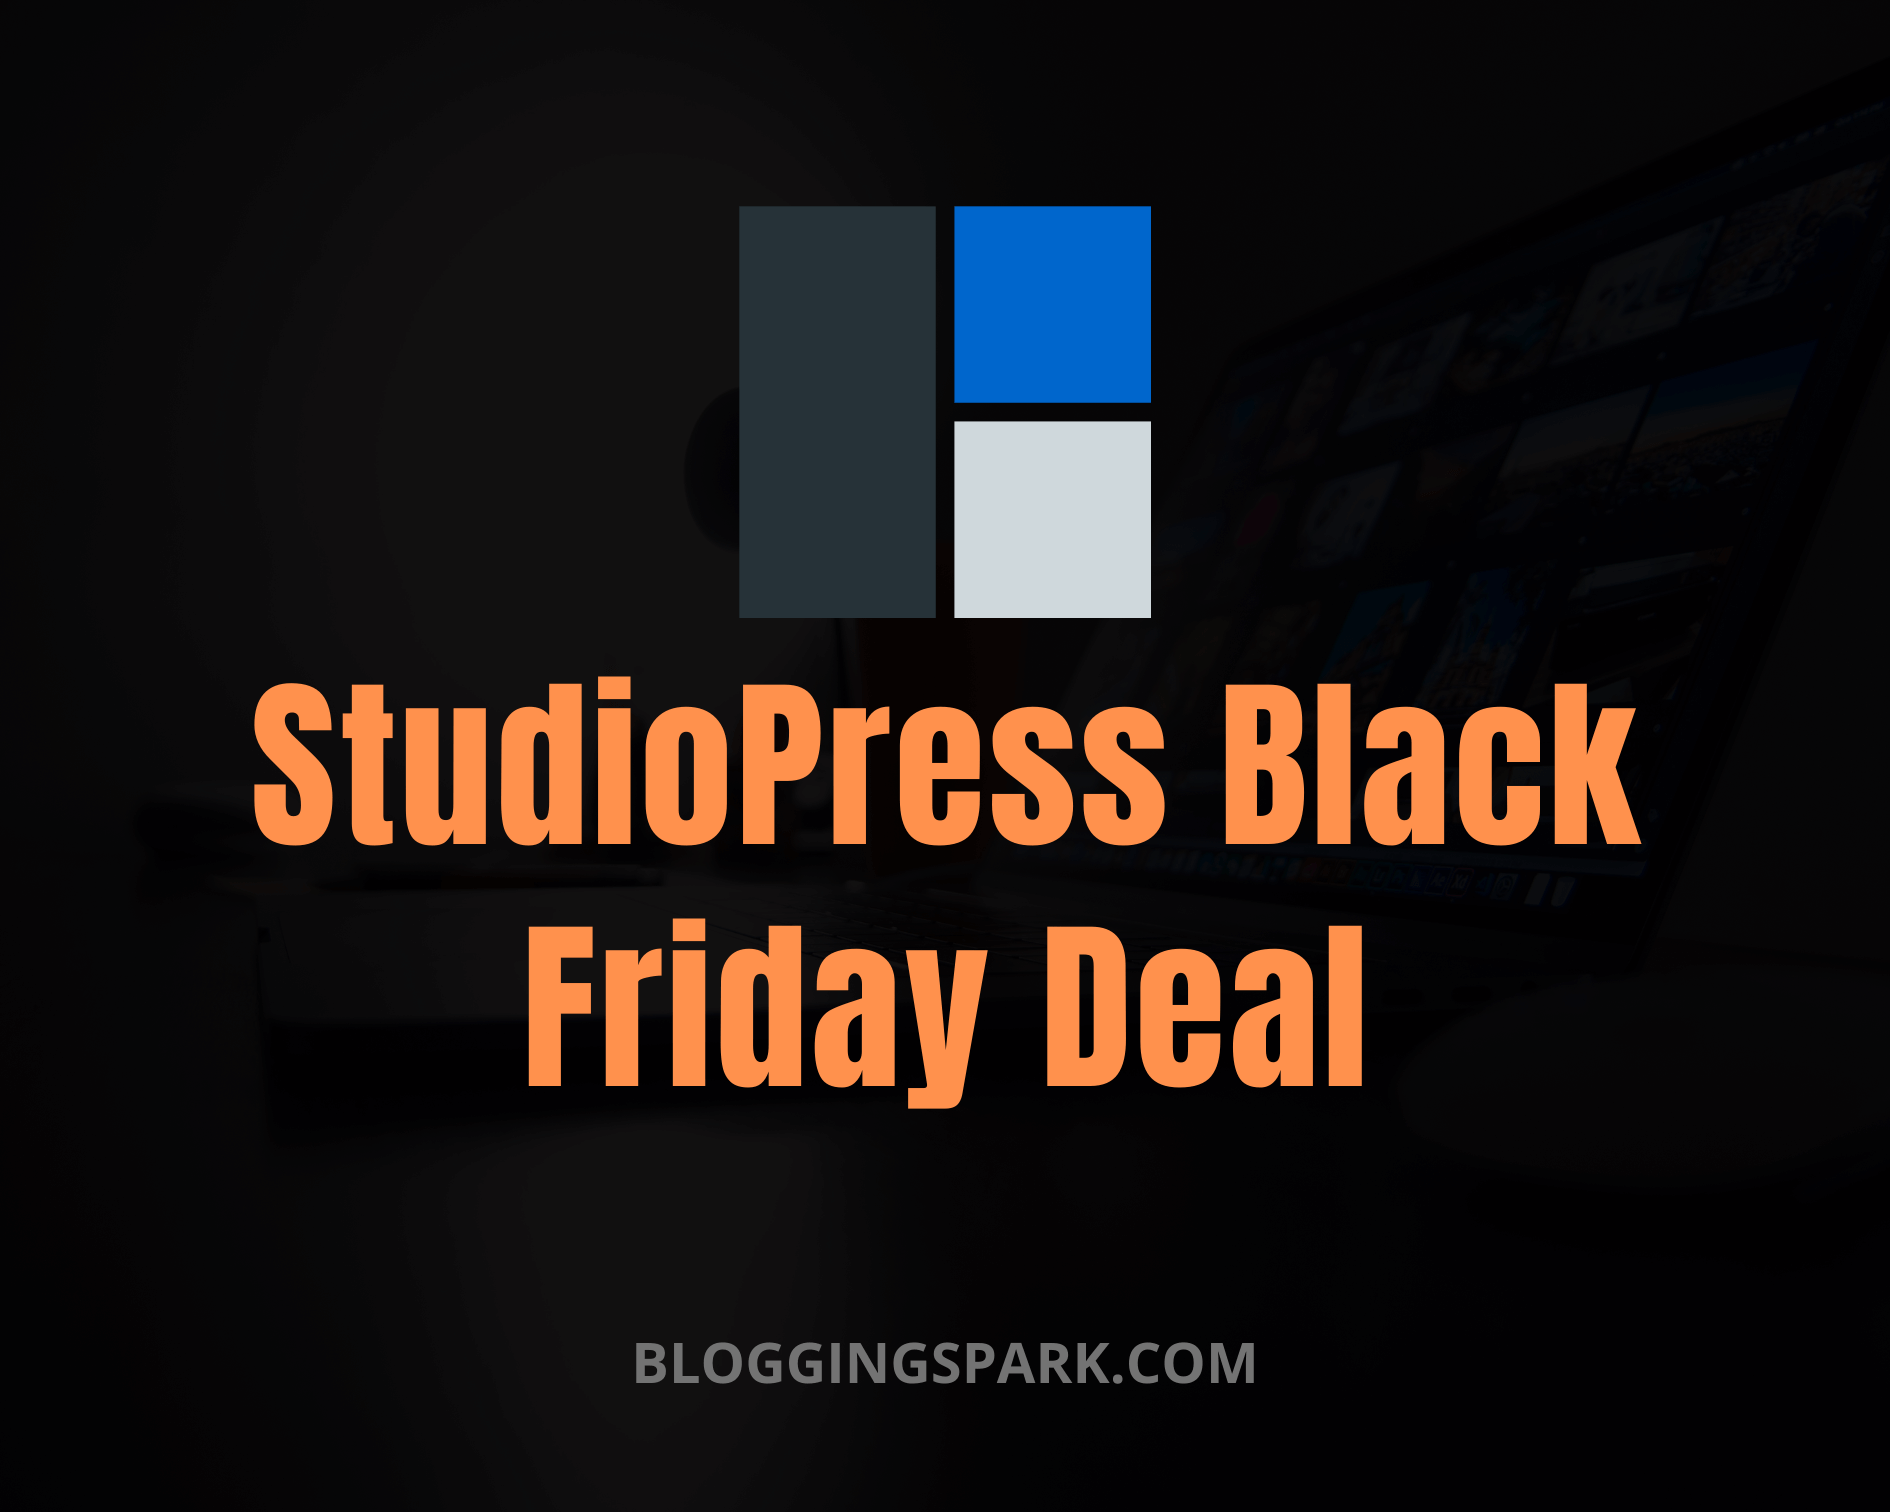 StudioPress Black Friday 2020 Deal Discount